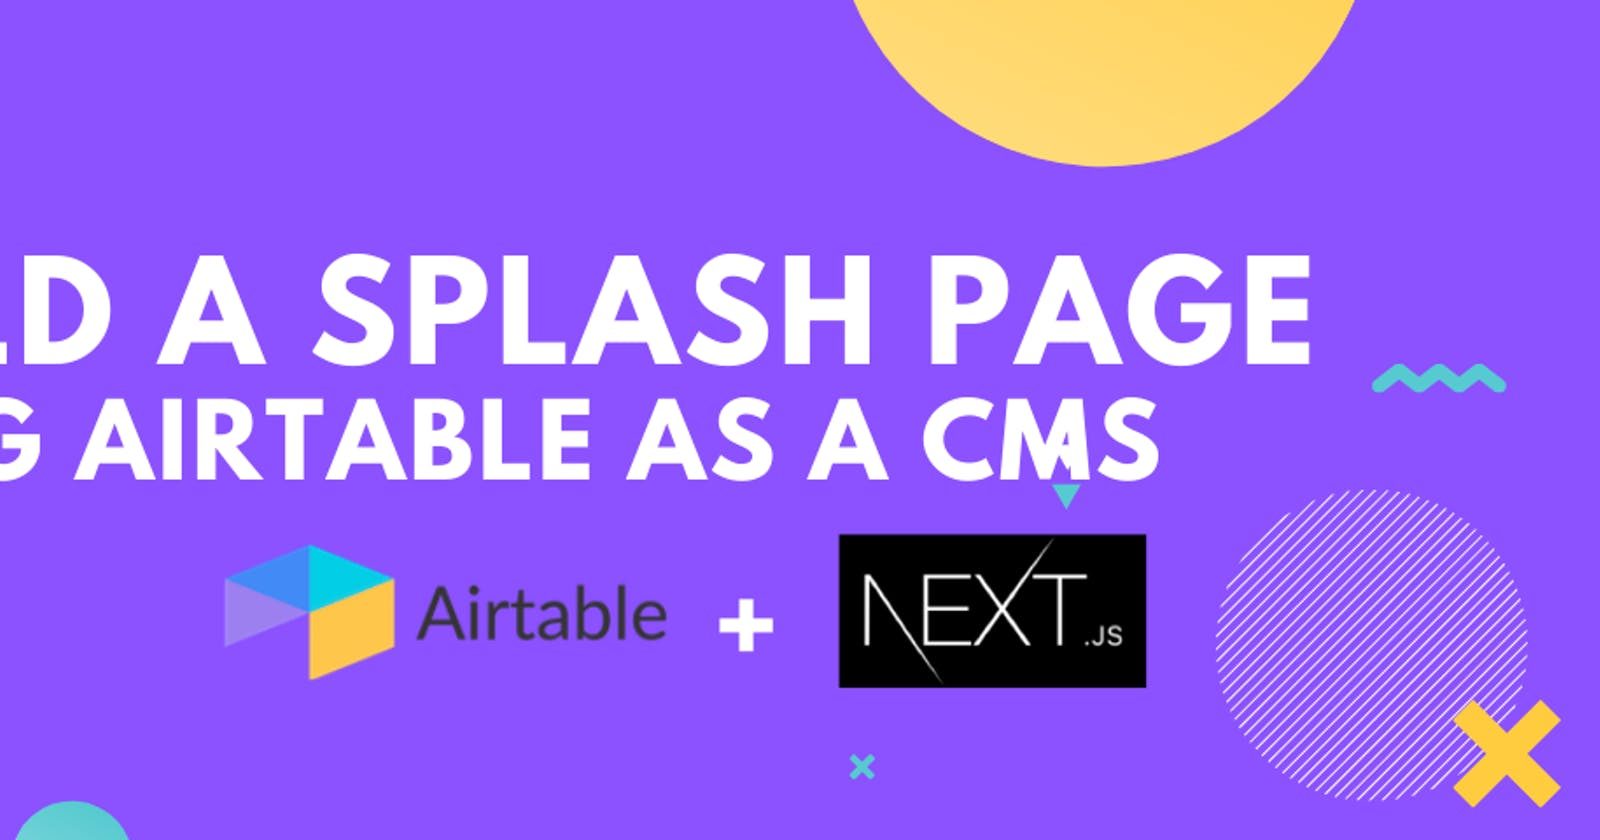 Build a Splash Page with Next.js using Airtable as a CMS.